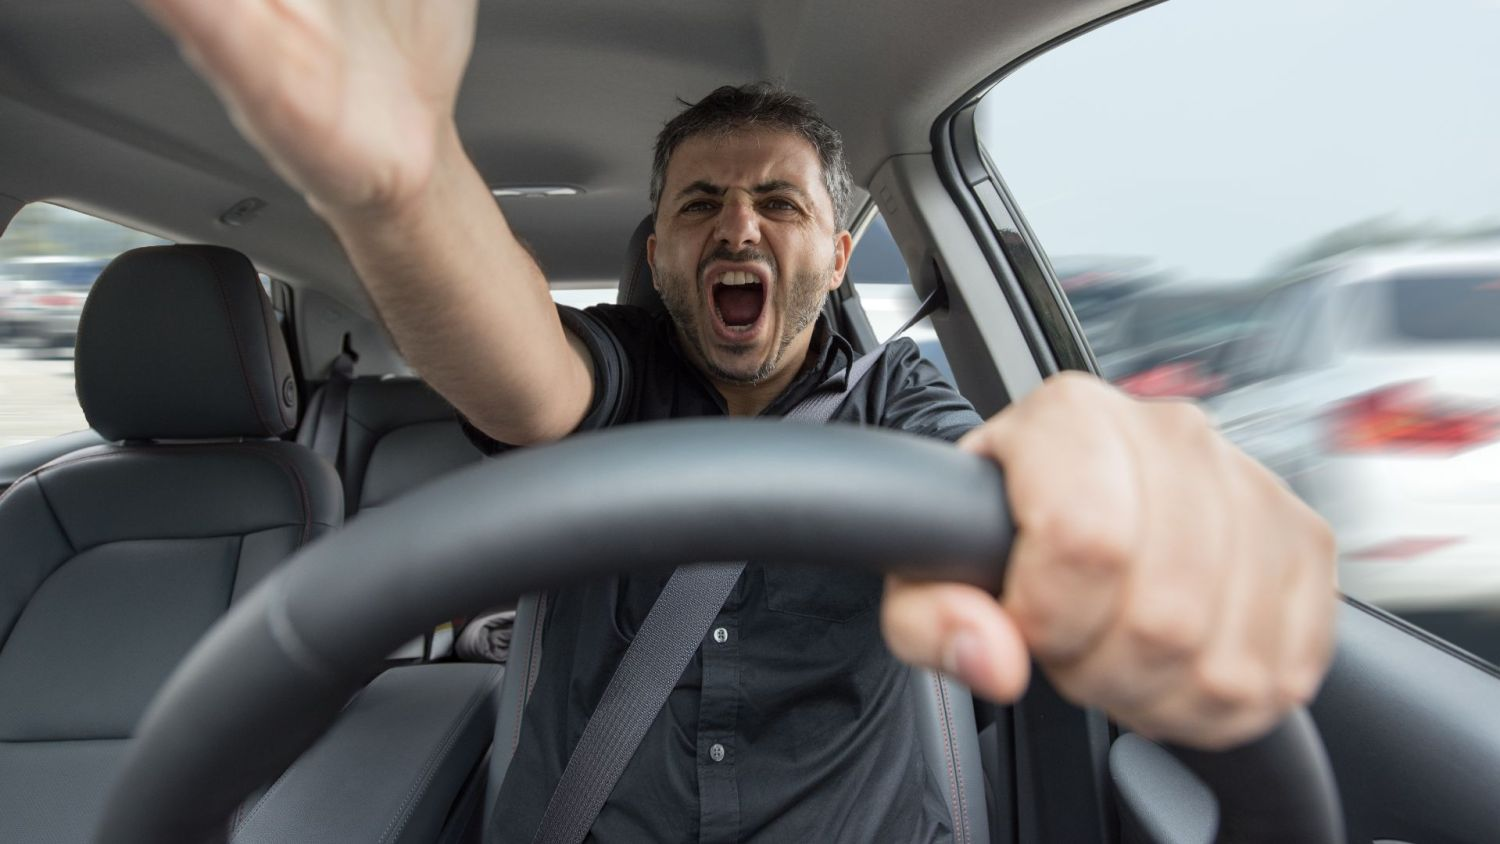 Road rage increasing in the UK